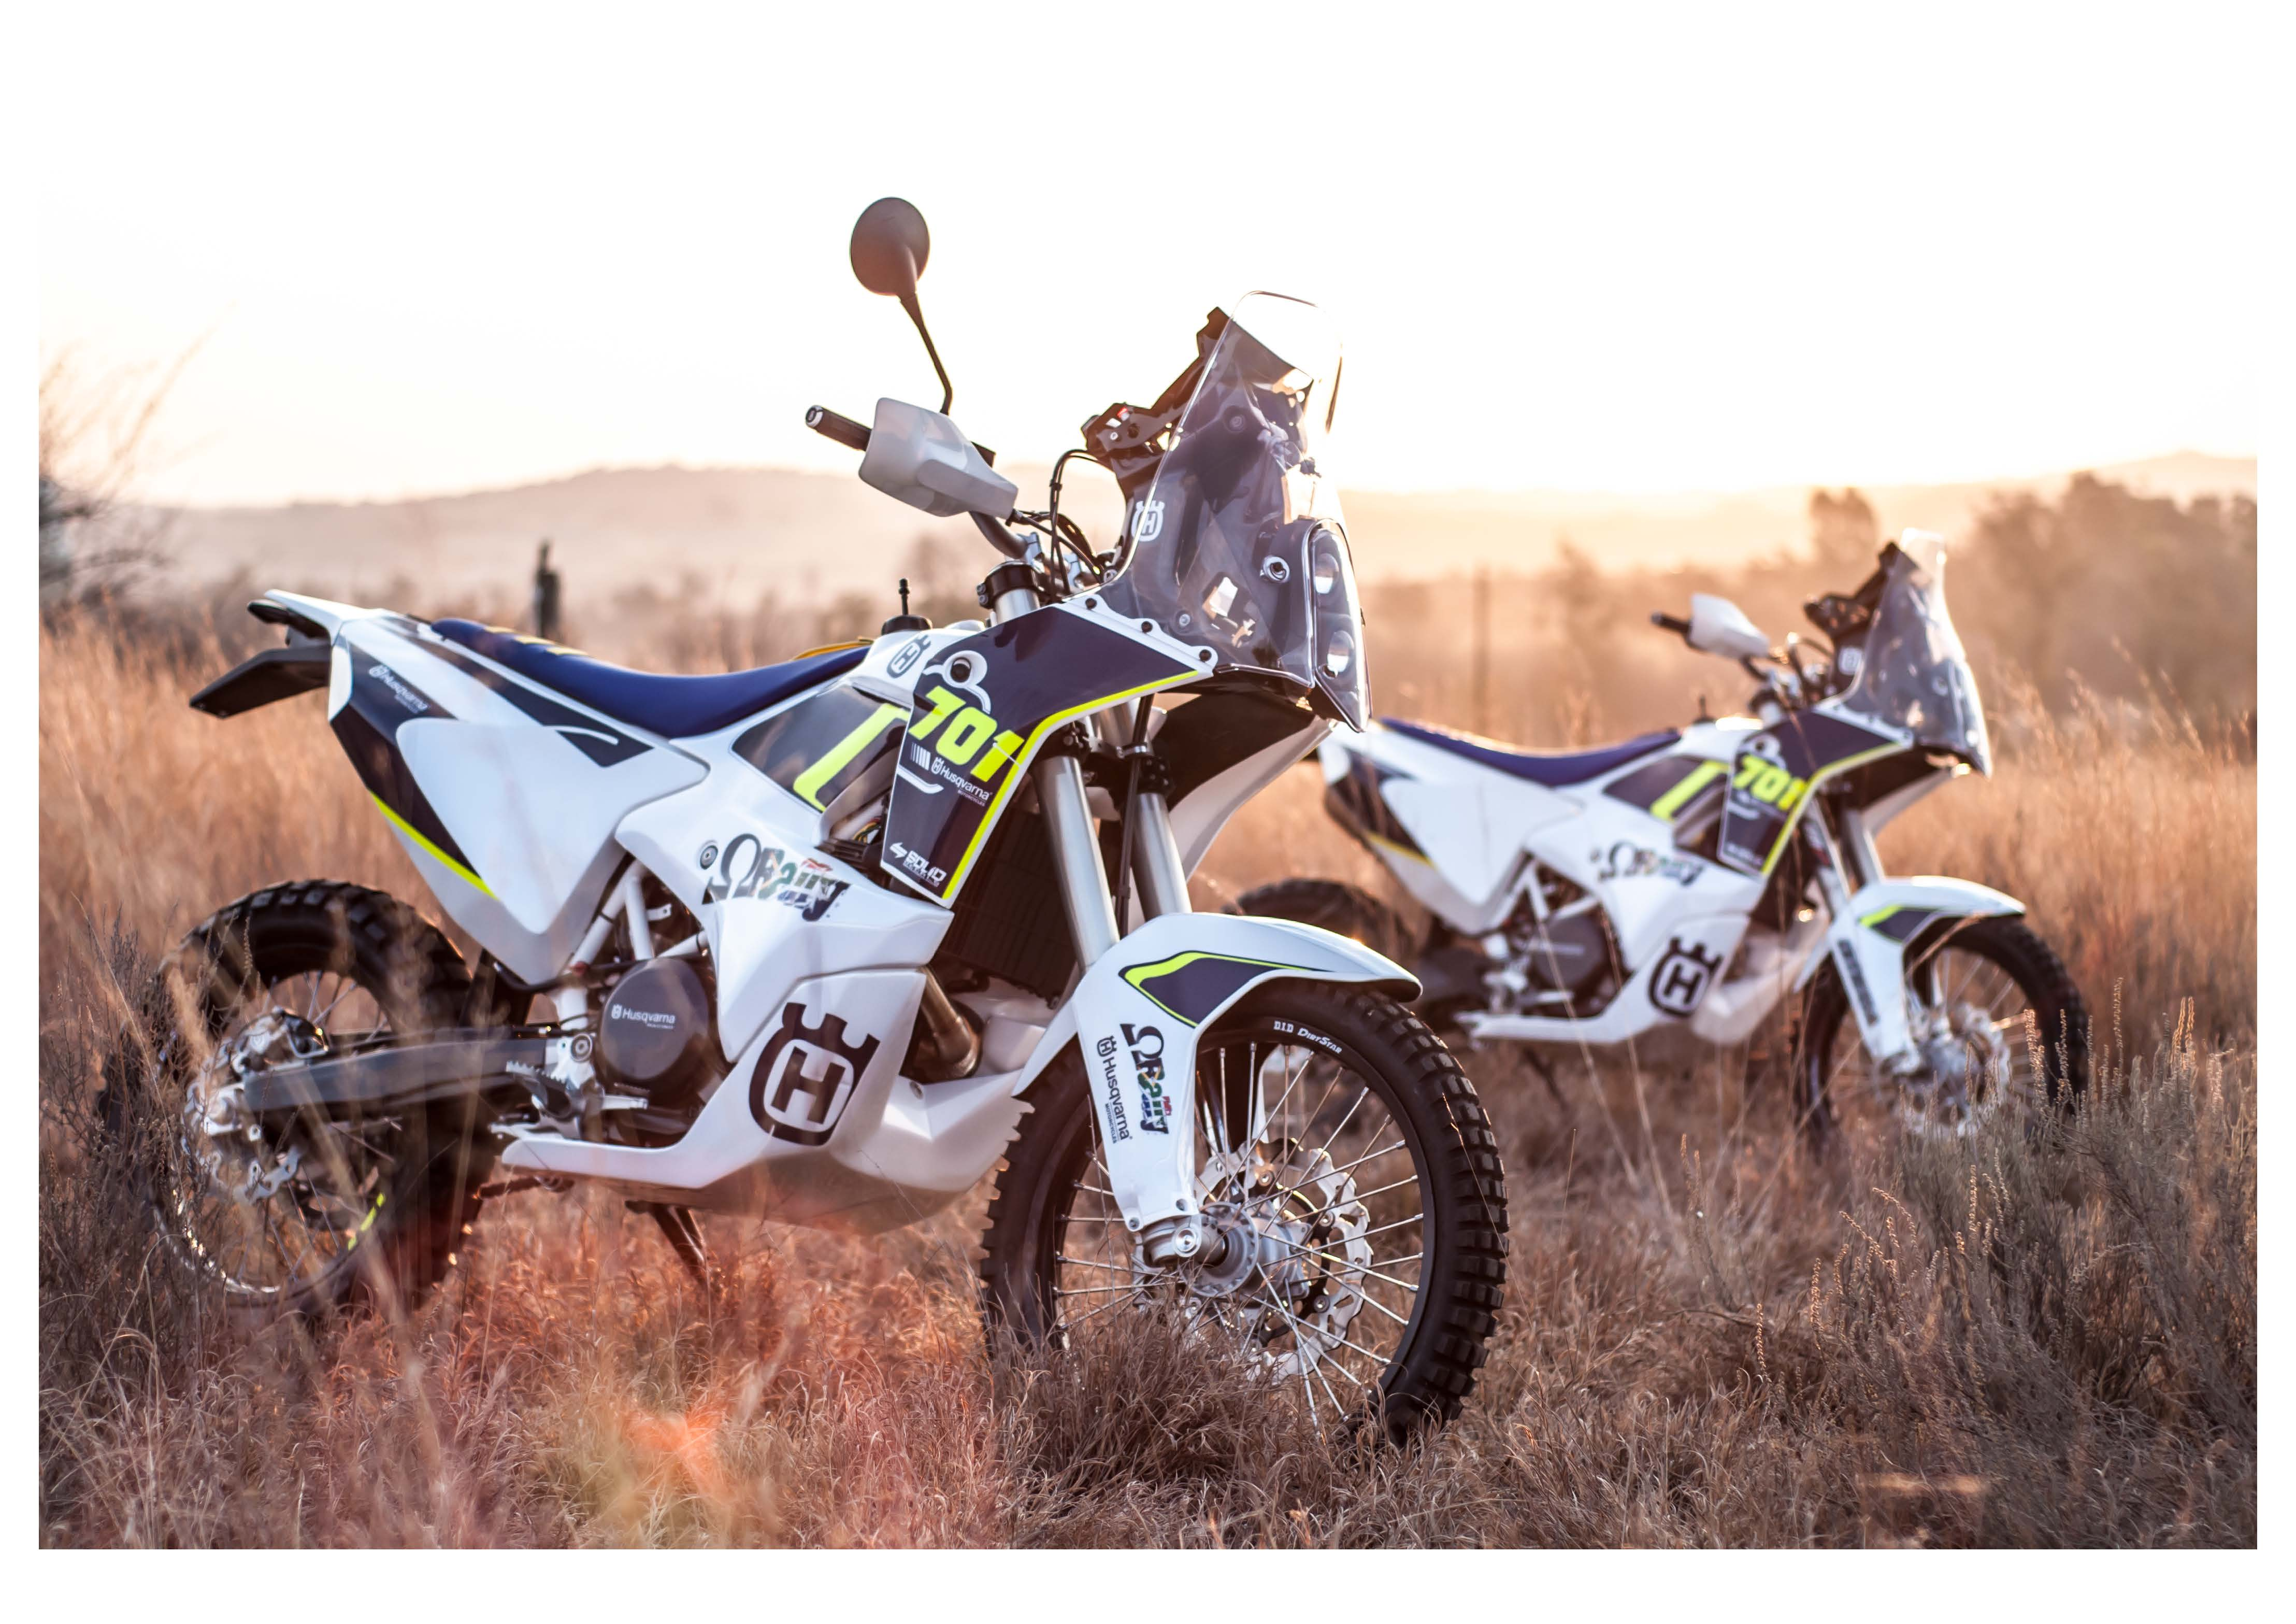 http://omegafibre.net/wp-content/gallery/husqvarna-701/hus__Page_07.jpg